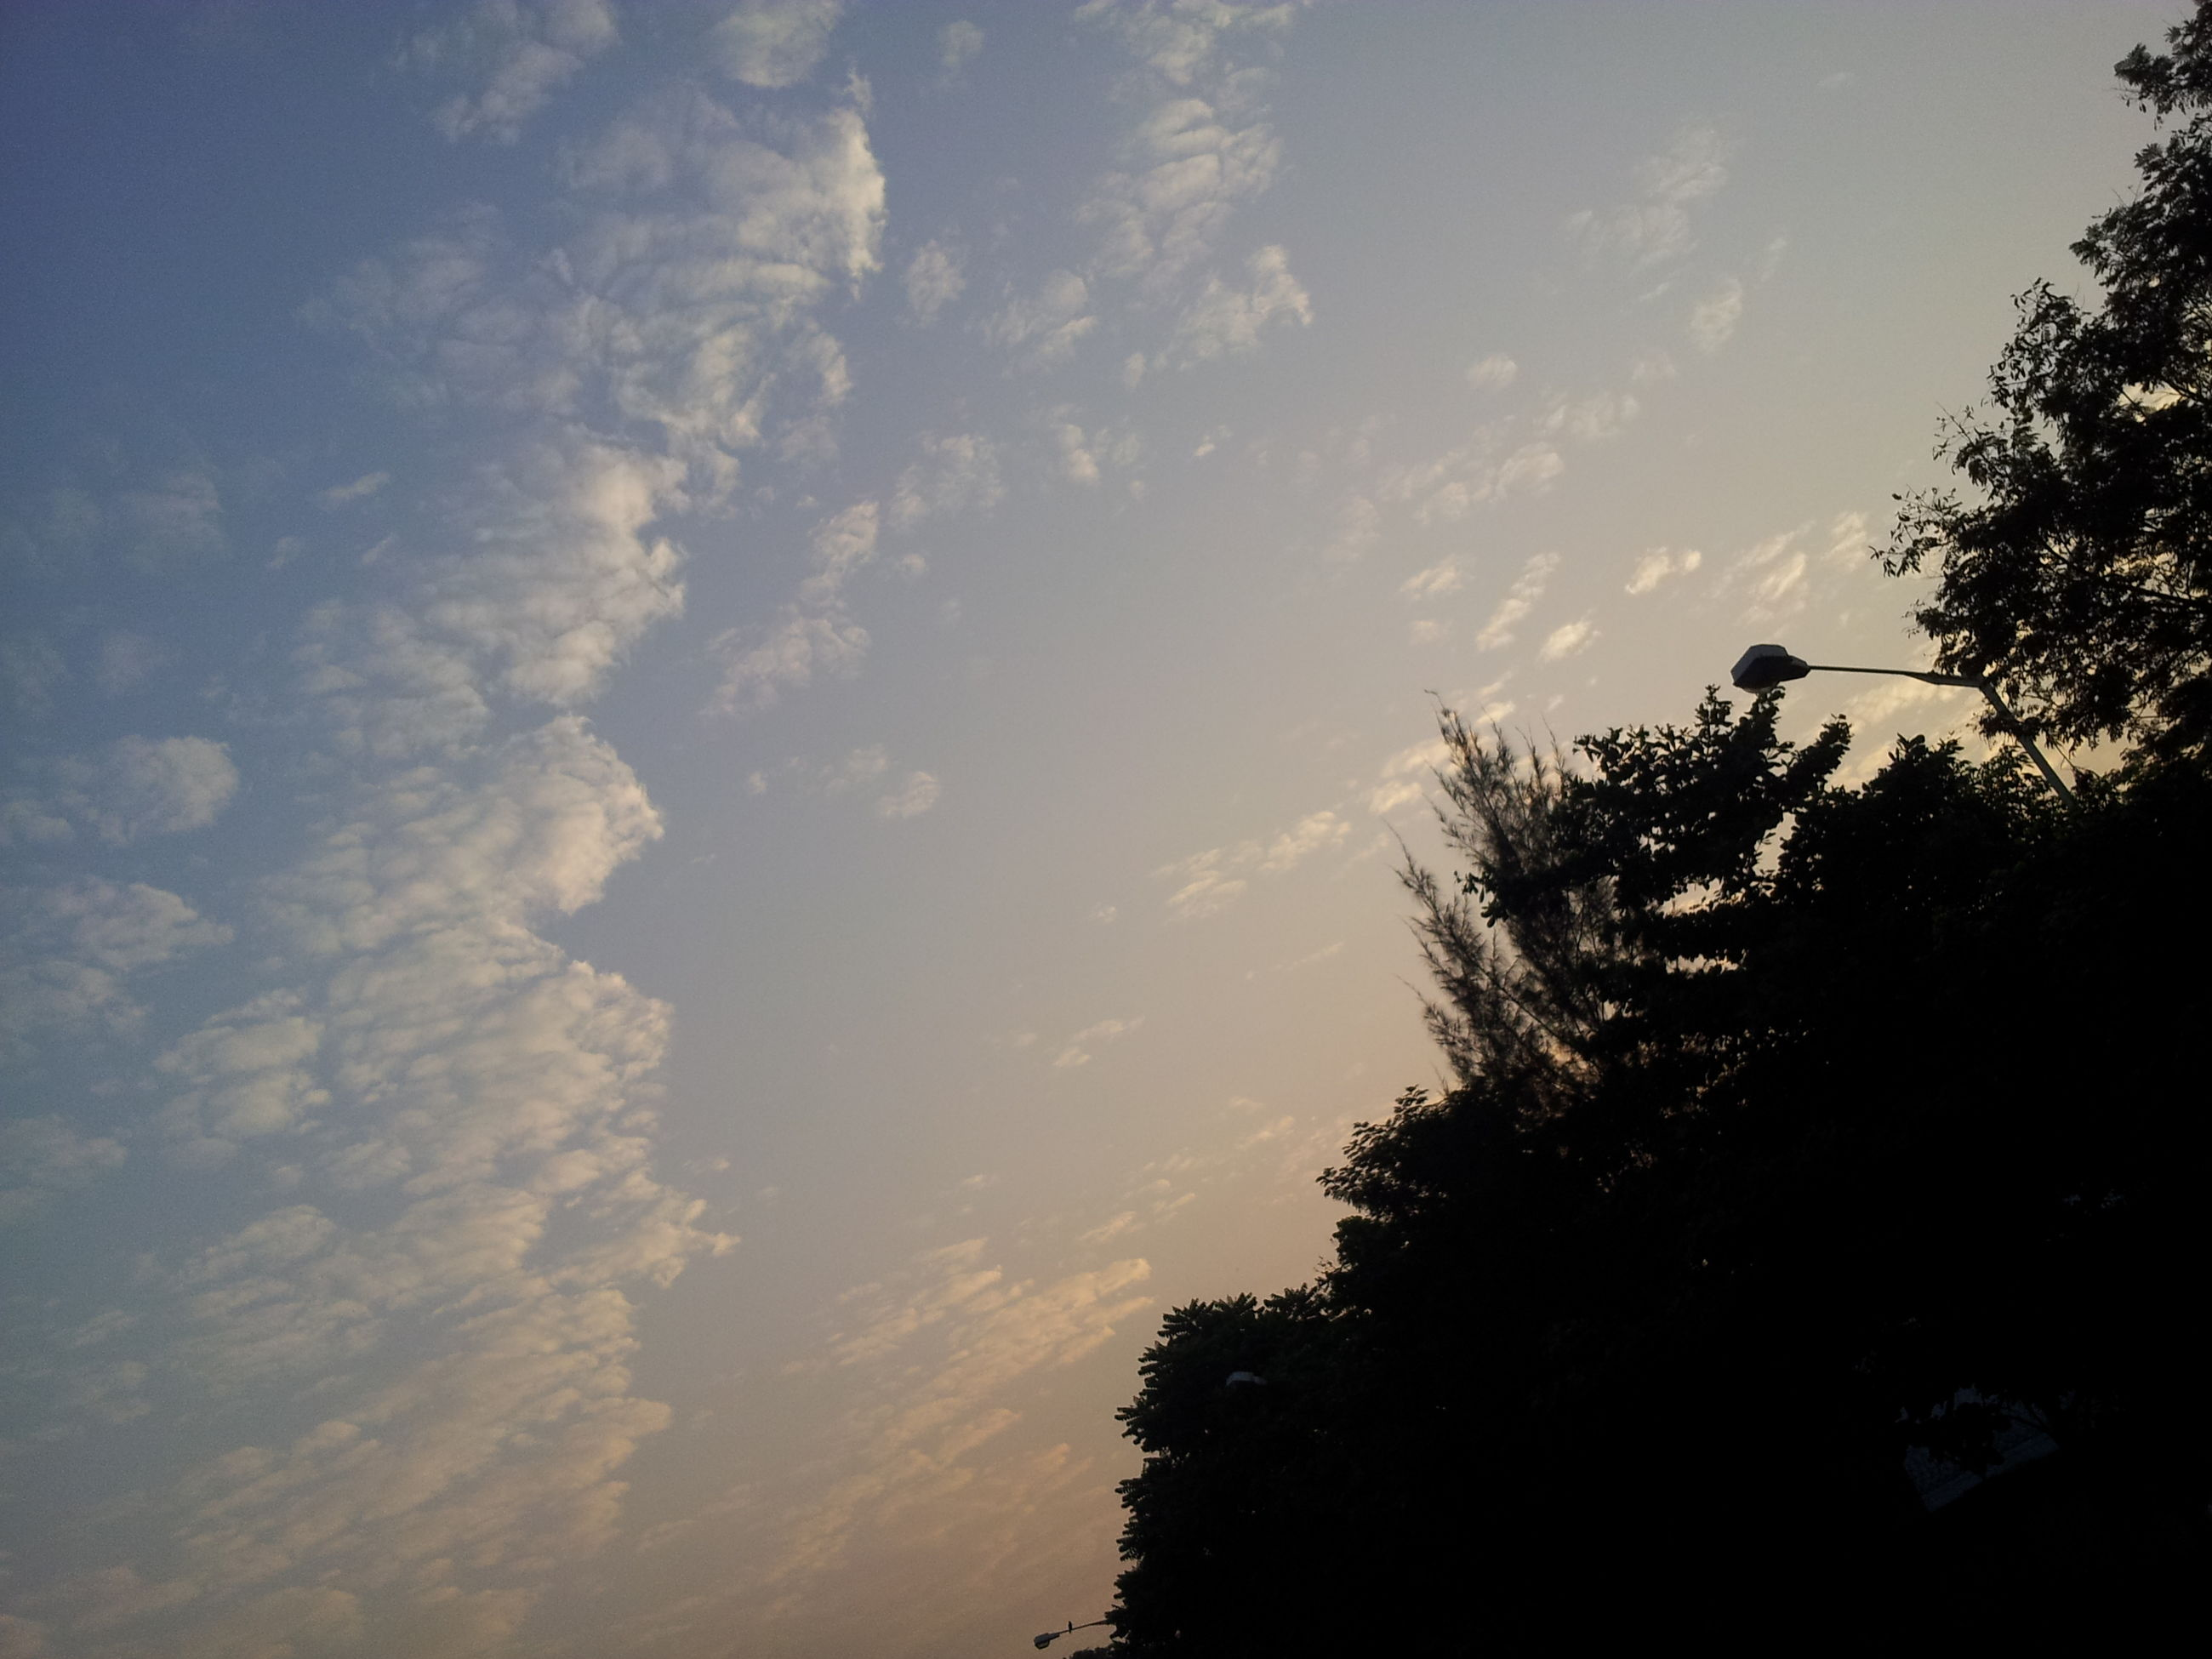 tree, silhouette, low angle view, sky, tranquility, beauty in nature, tranquil scene, scenics, nature, growth, cloud - sky, branch, outdoors, no people, dusk, idyllic, cloud, blue, day, forest